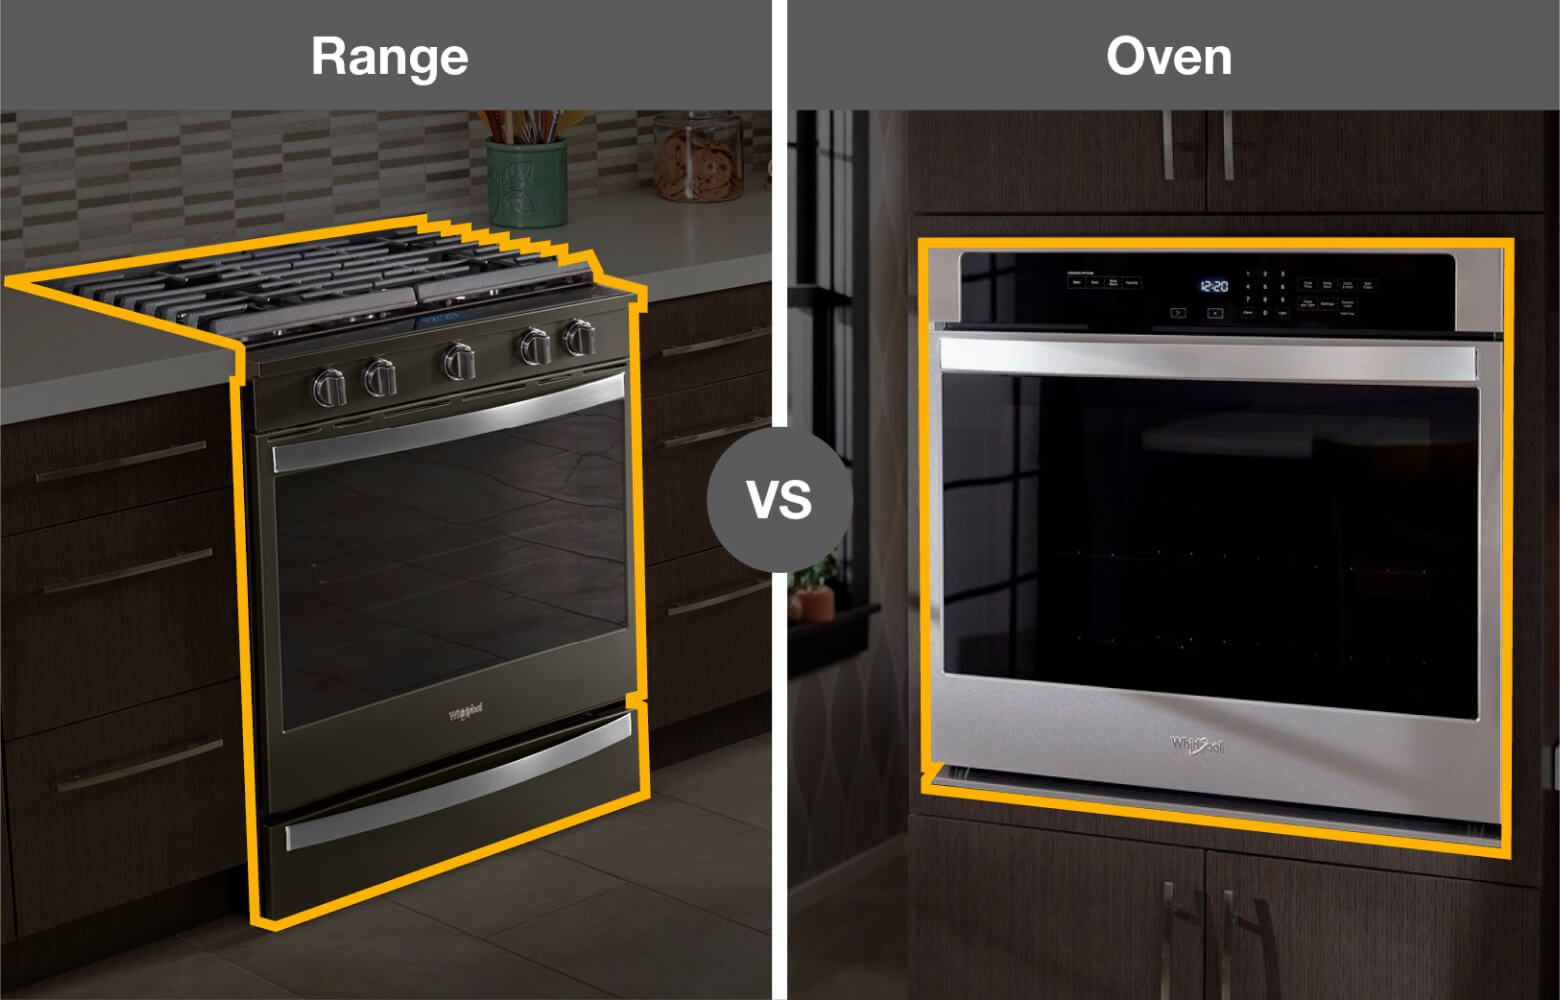 Whirlpool® kitchen range and wall oven with outline